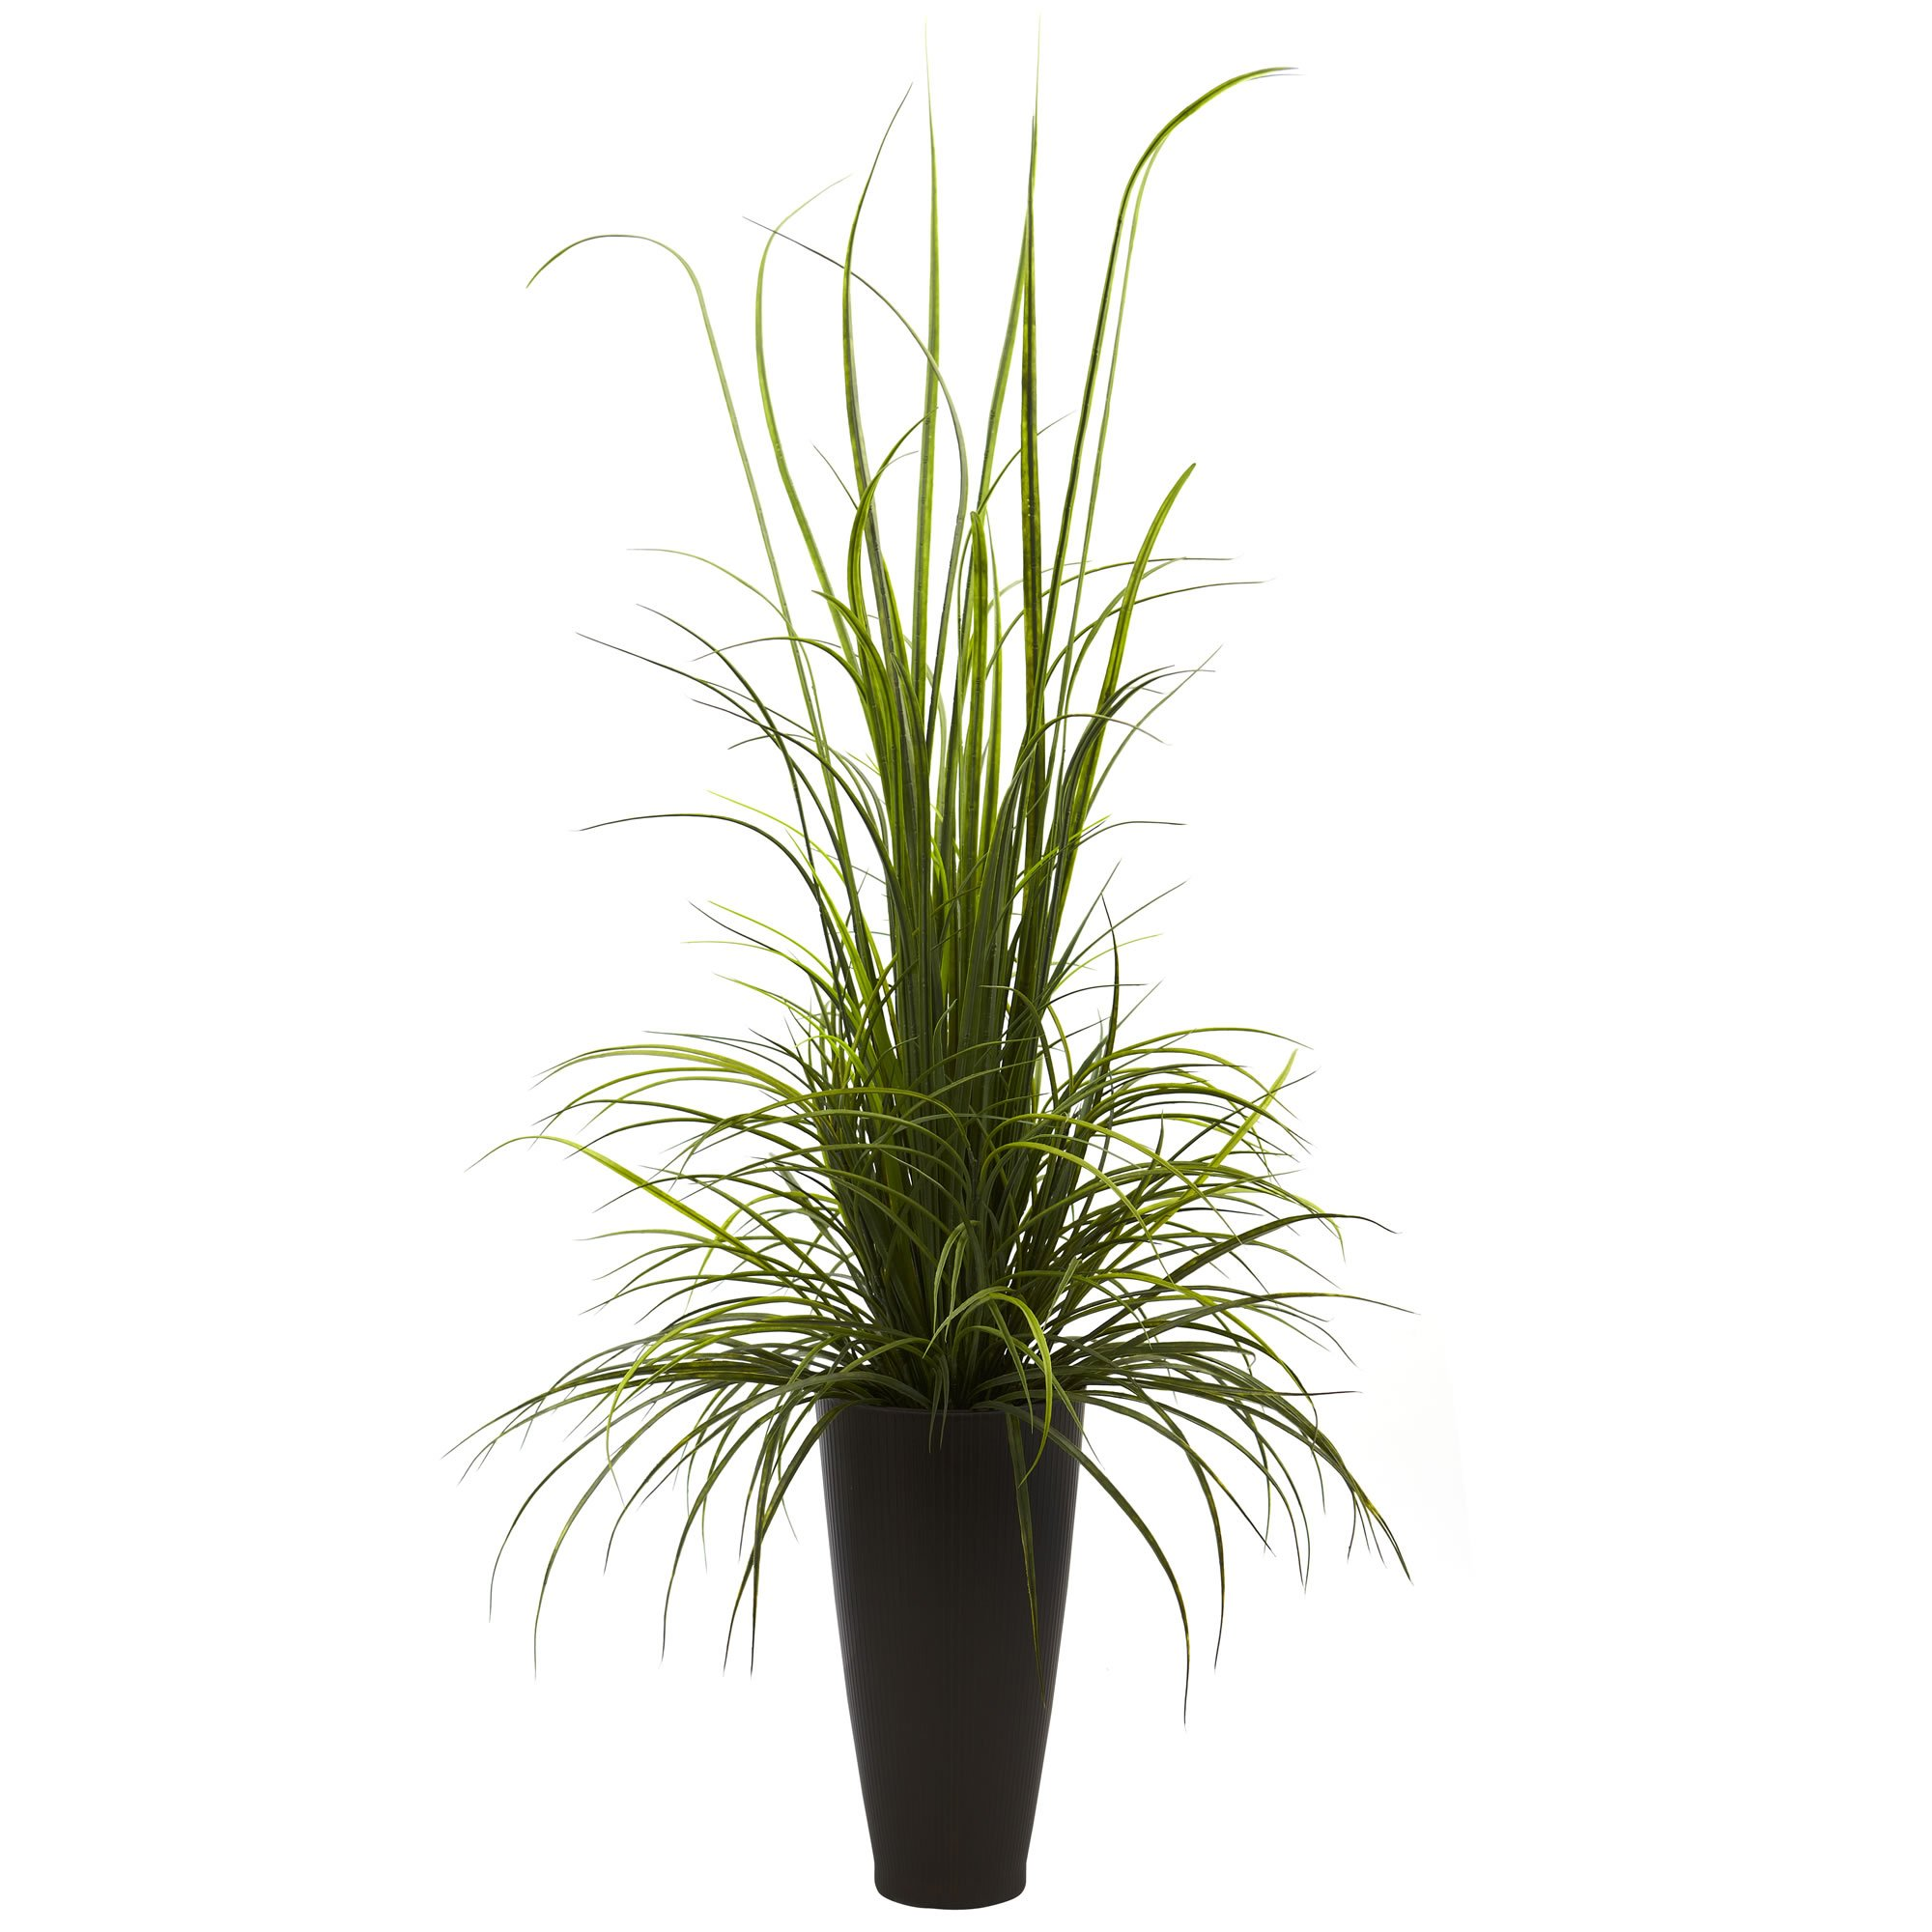 Nearly Natural 4969 Indoor/Outdoor River Grass with Planter, 64-Inch, Green by Nearly Natural